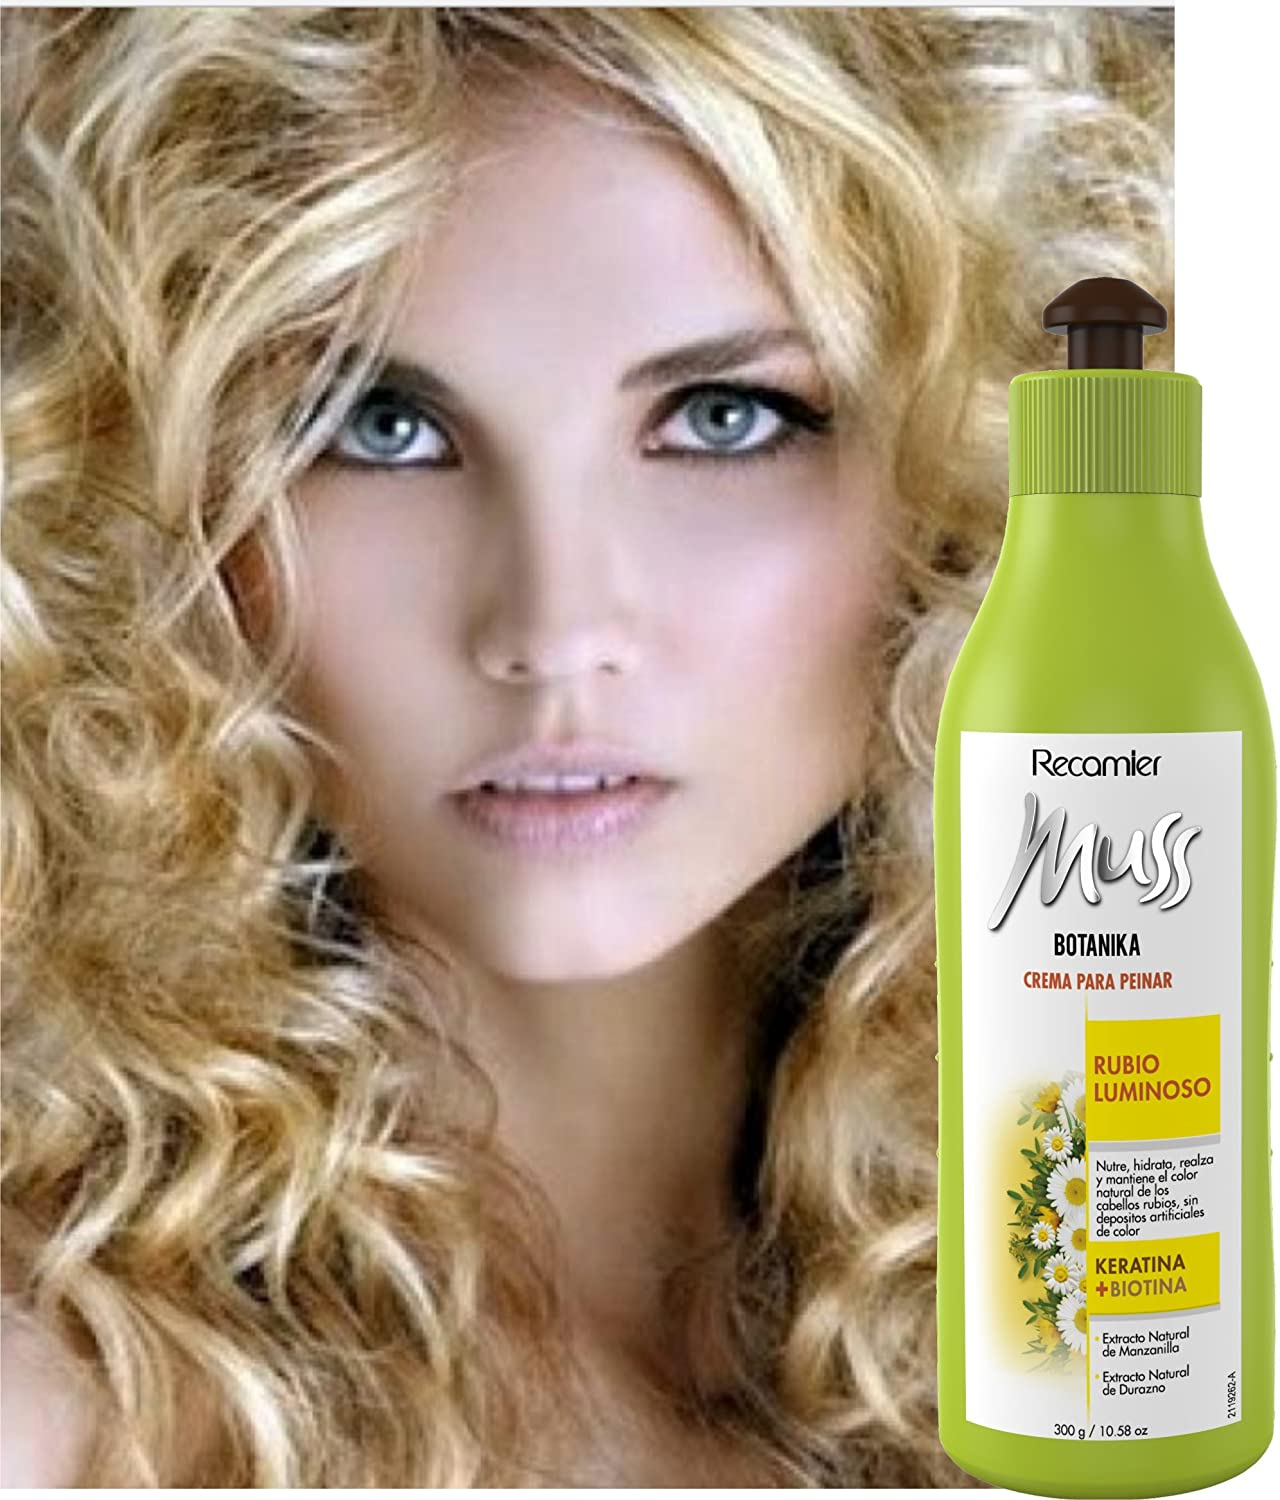 Amazon.com : MUSS BOTANIKA RUBIO LUMINOSO CREMA PARA PEINAR / Combing cream for blonde hair. leave in with keratin and biotin 300gr/10.5oz : Beauty